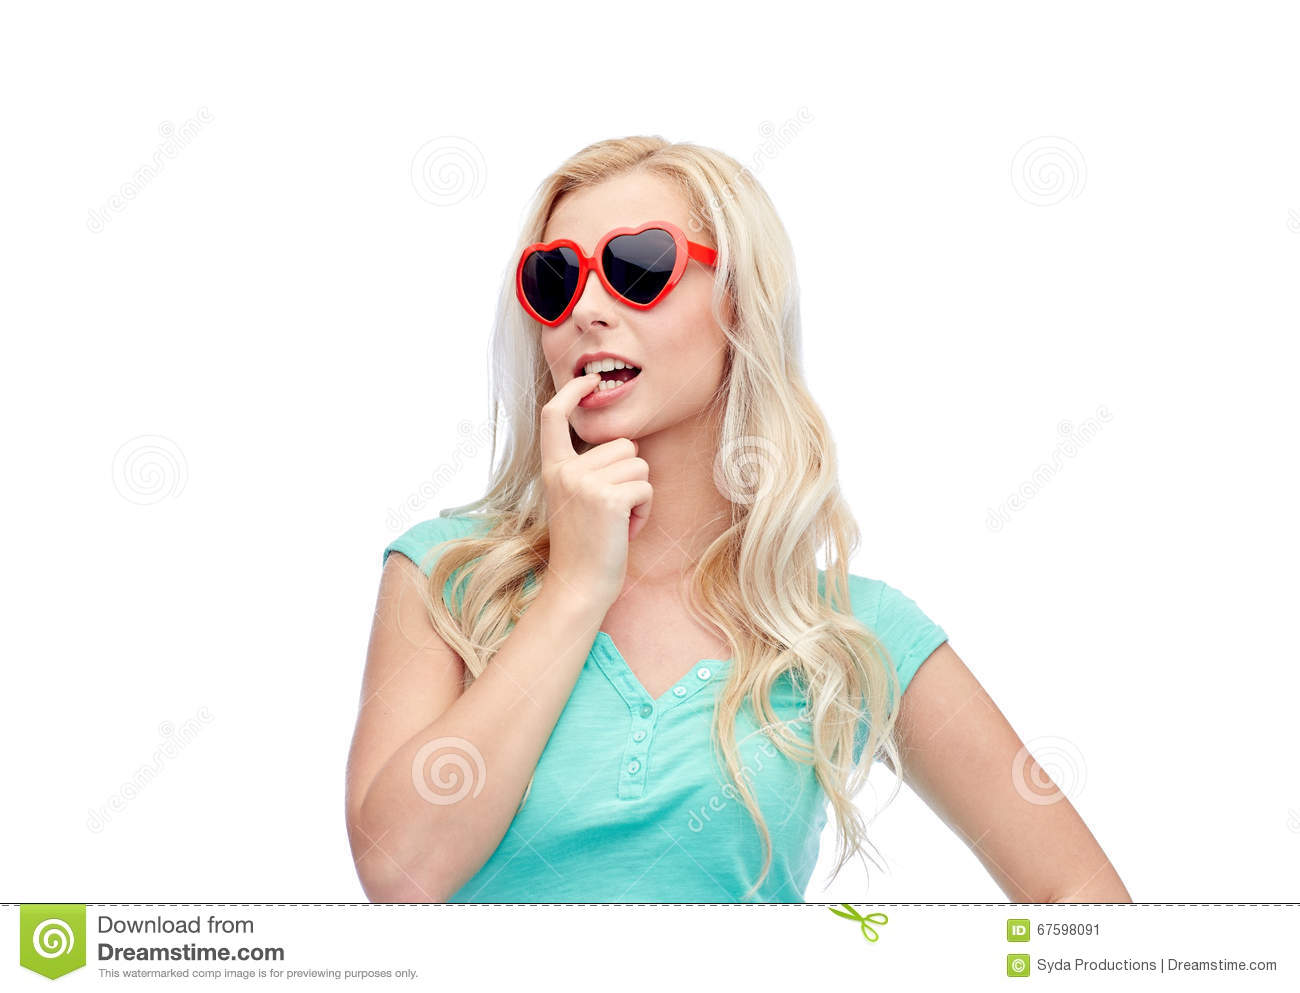 Of blond teen holding sunglasses get you